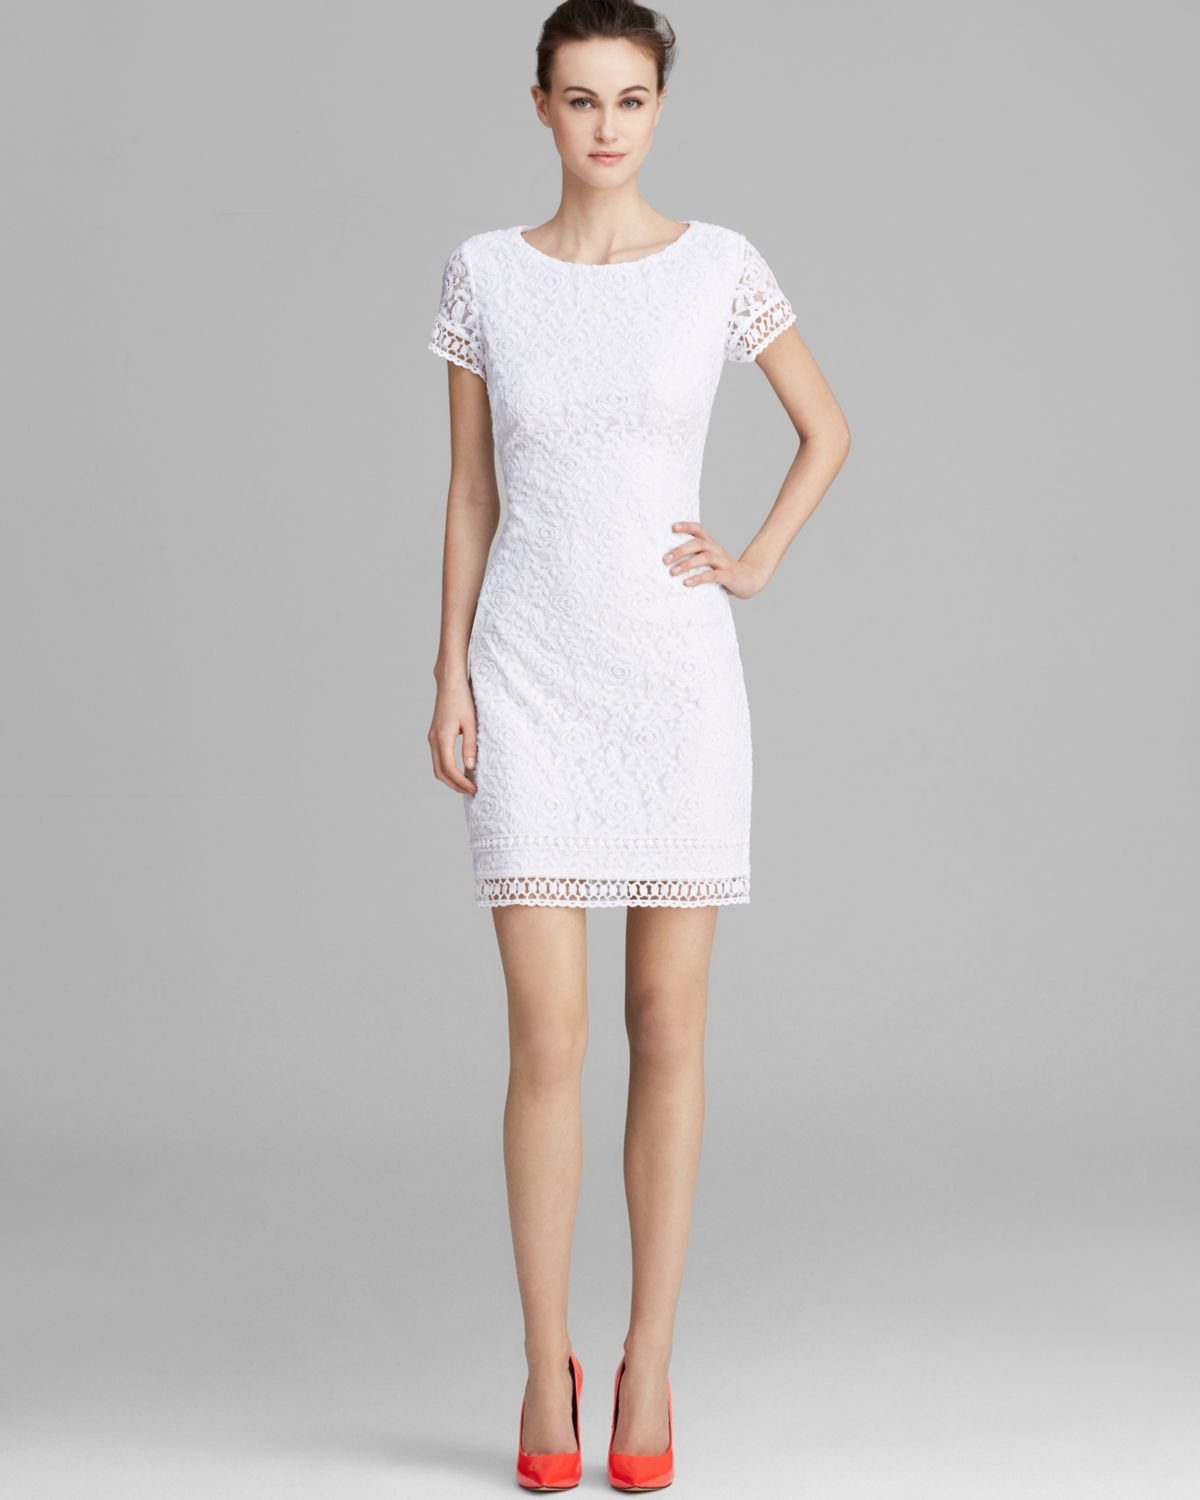 Lyst - Laundry By Shelli Segal Dress Short Sleeve Lace ...